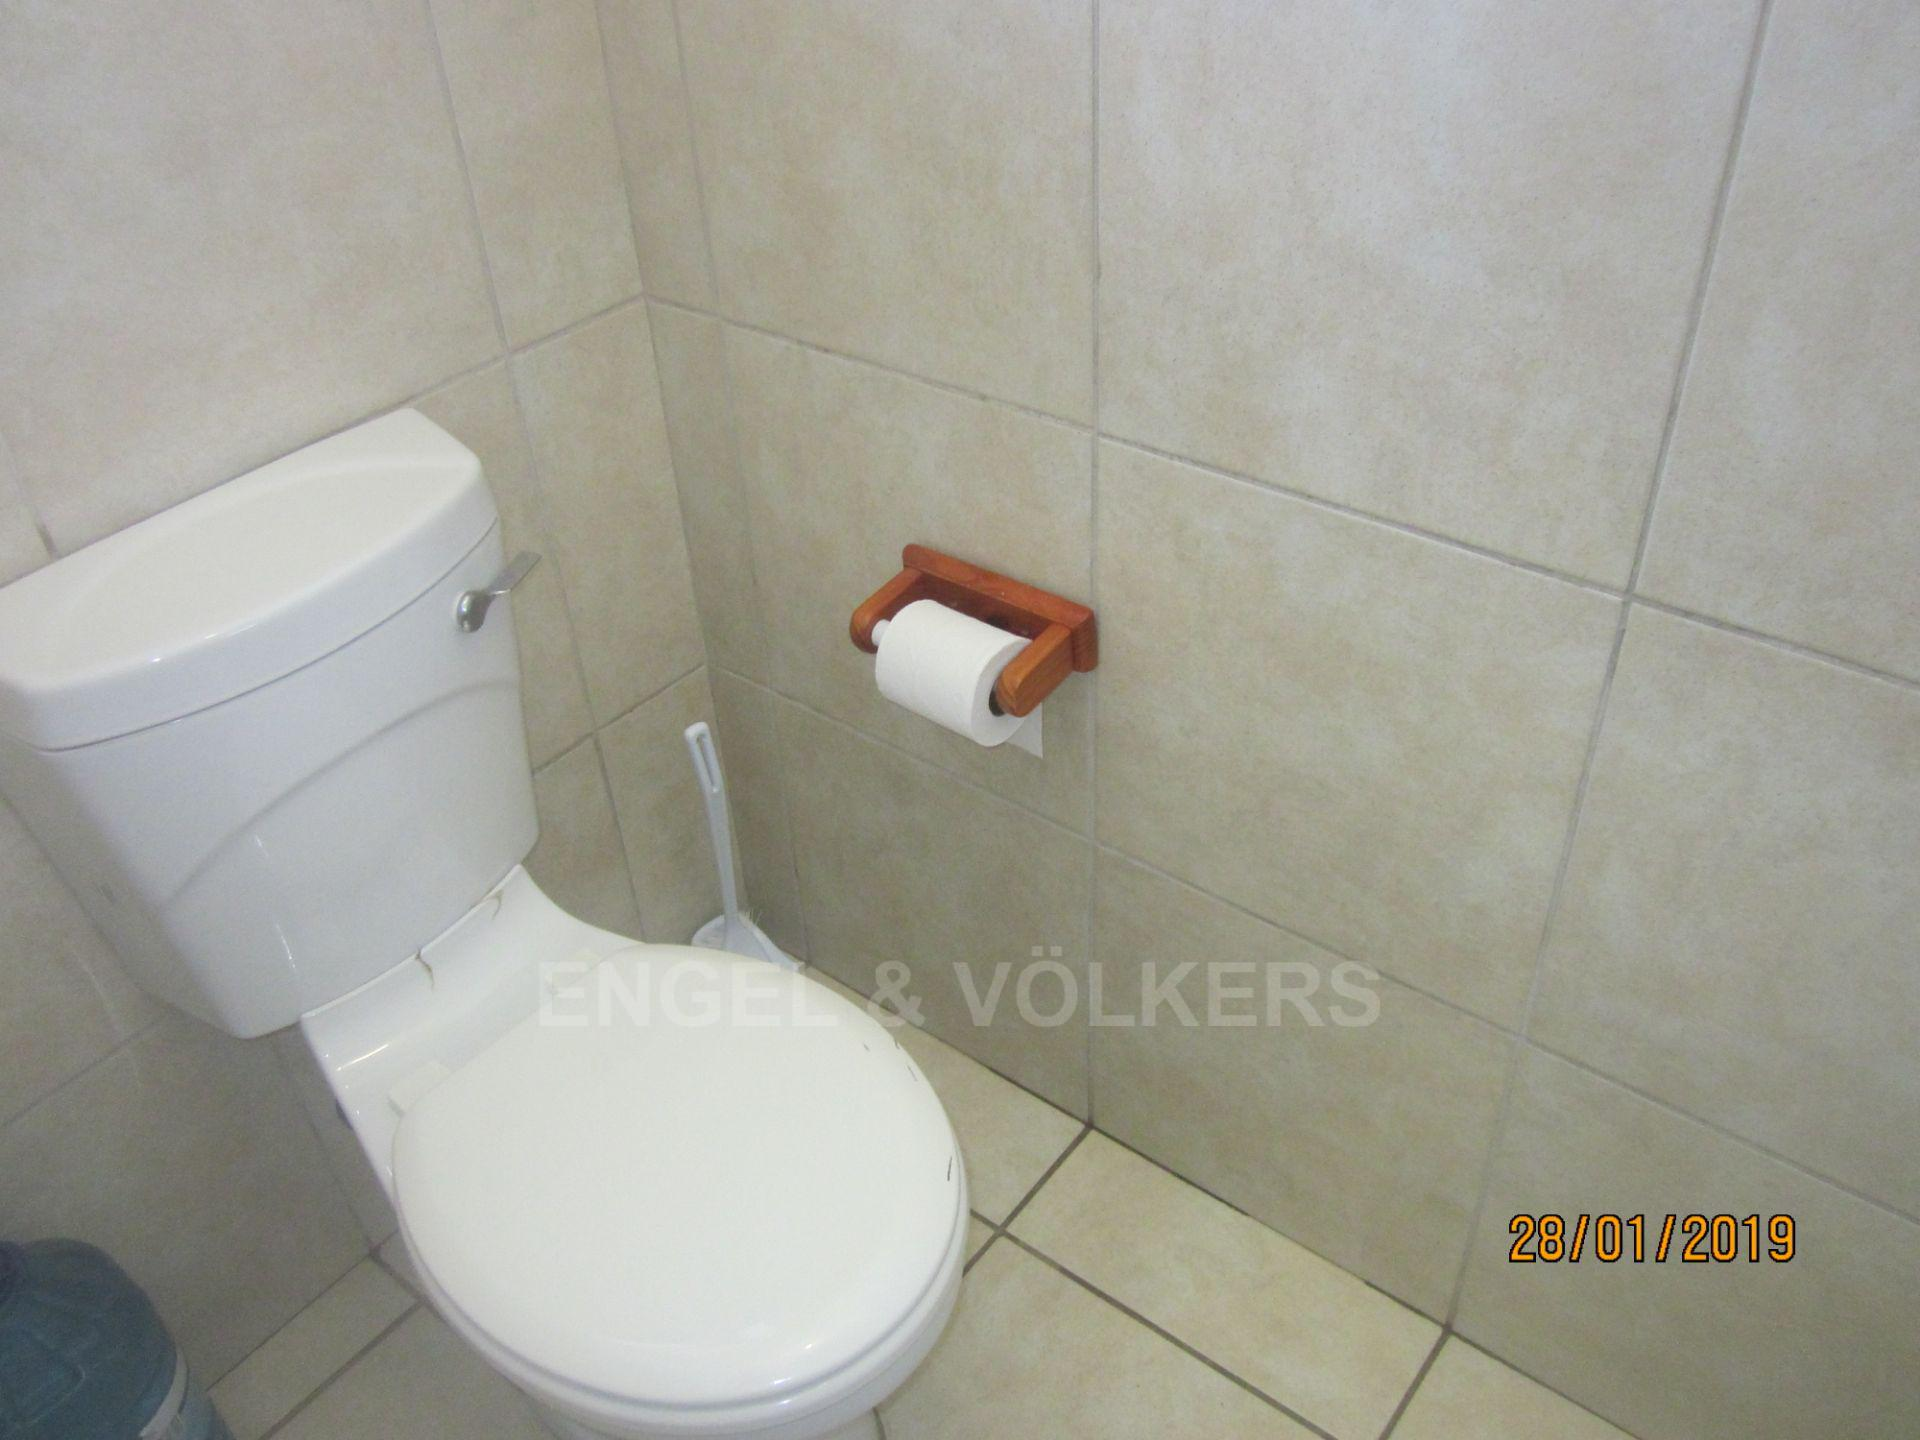 Investment / Residential investment in Shelly Beach - 005 Staff Toilet.JPG